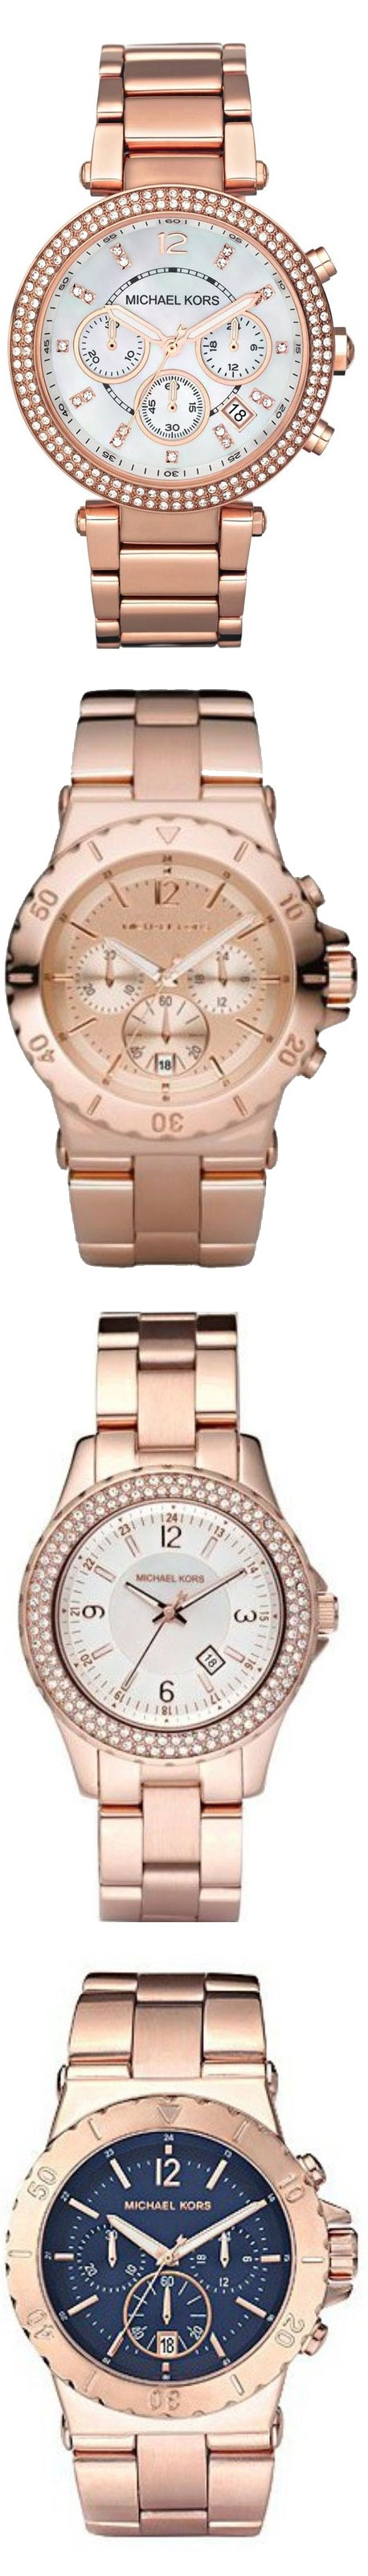 Michael Kors Rose Gold Watches